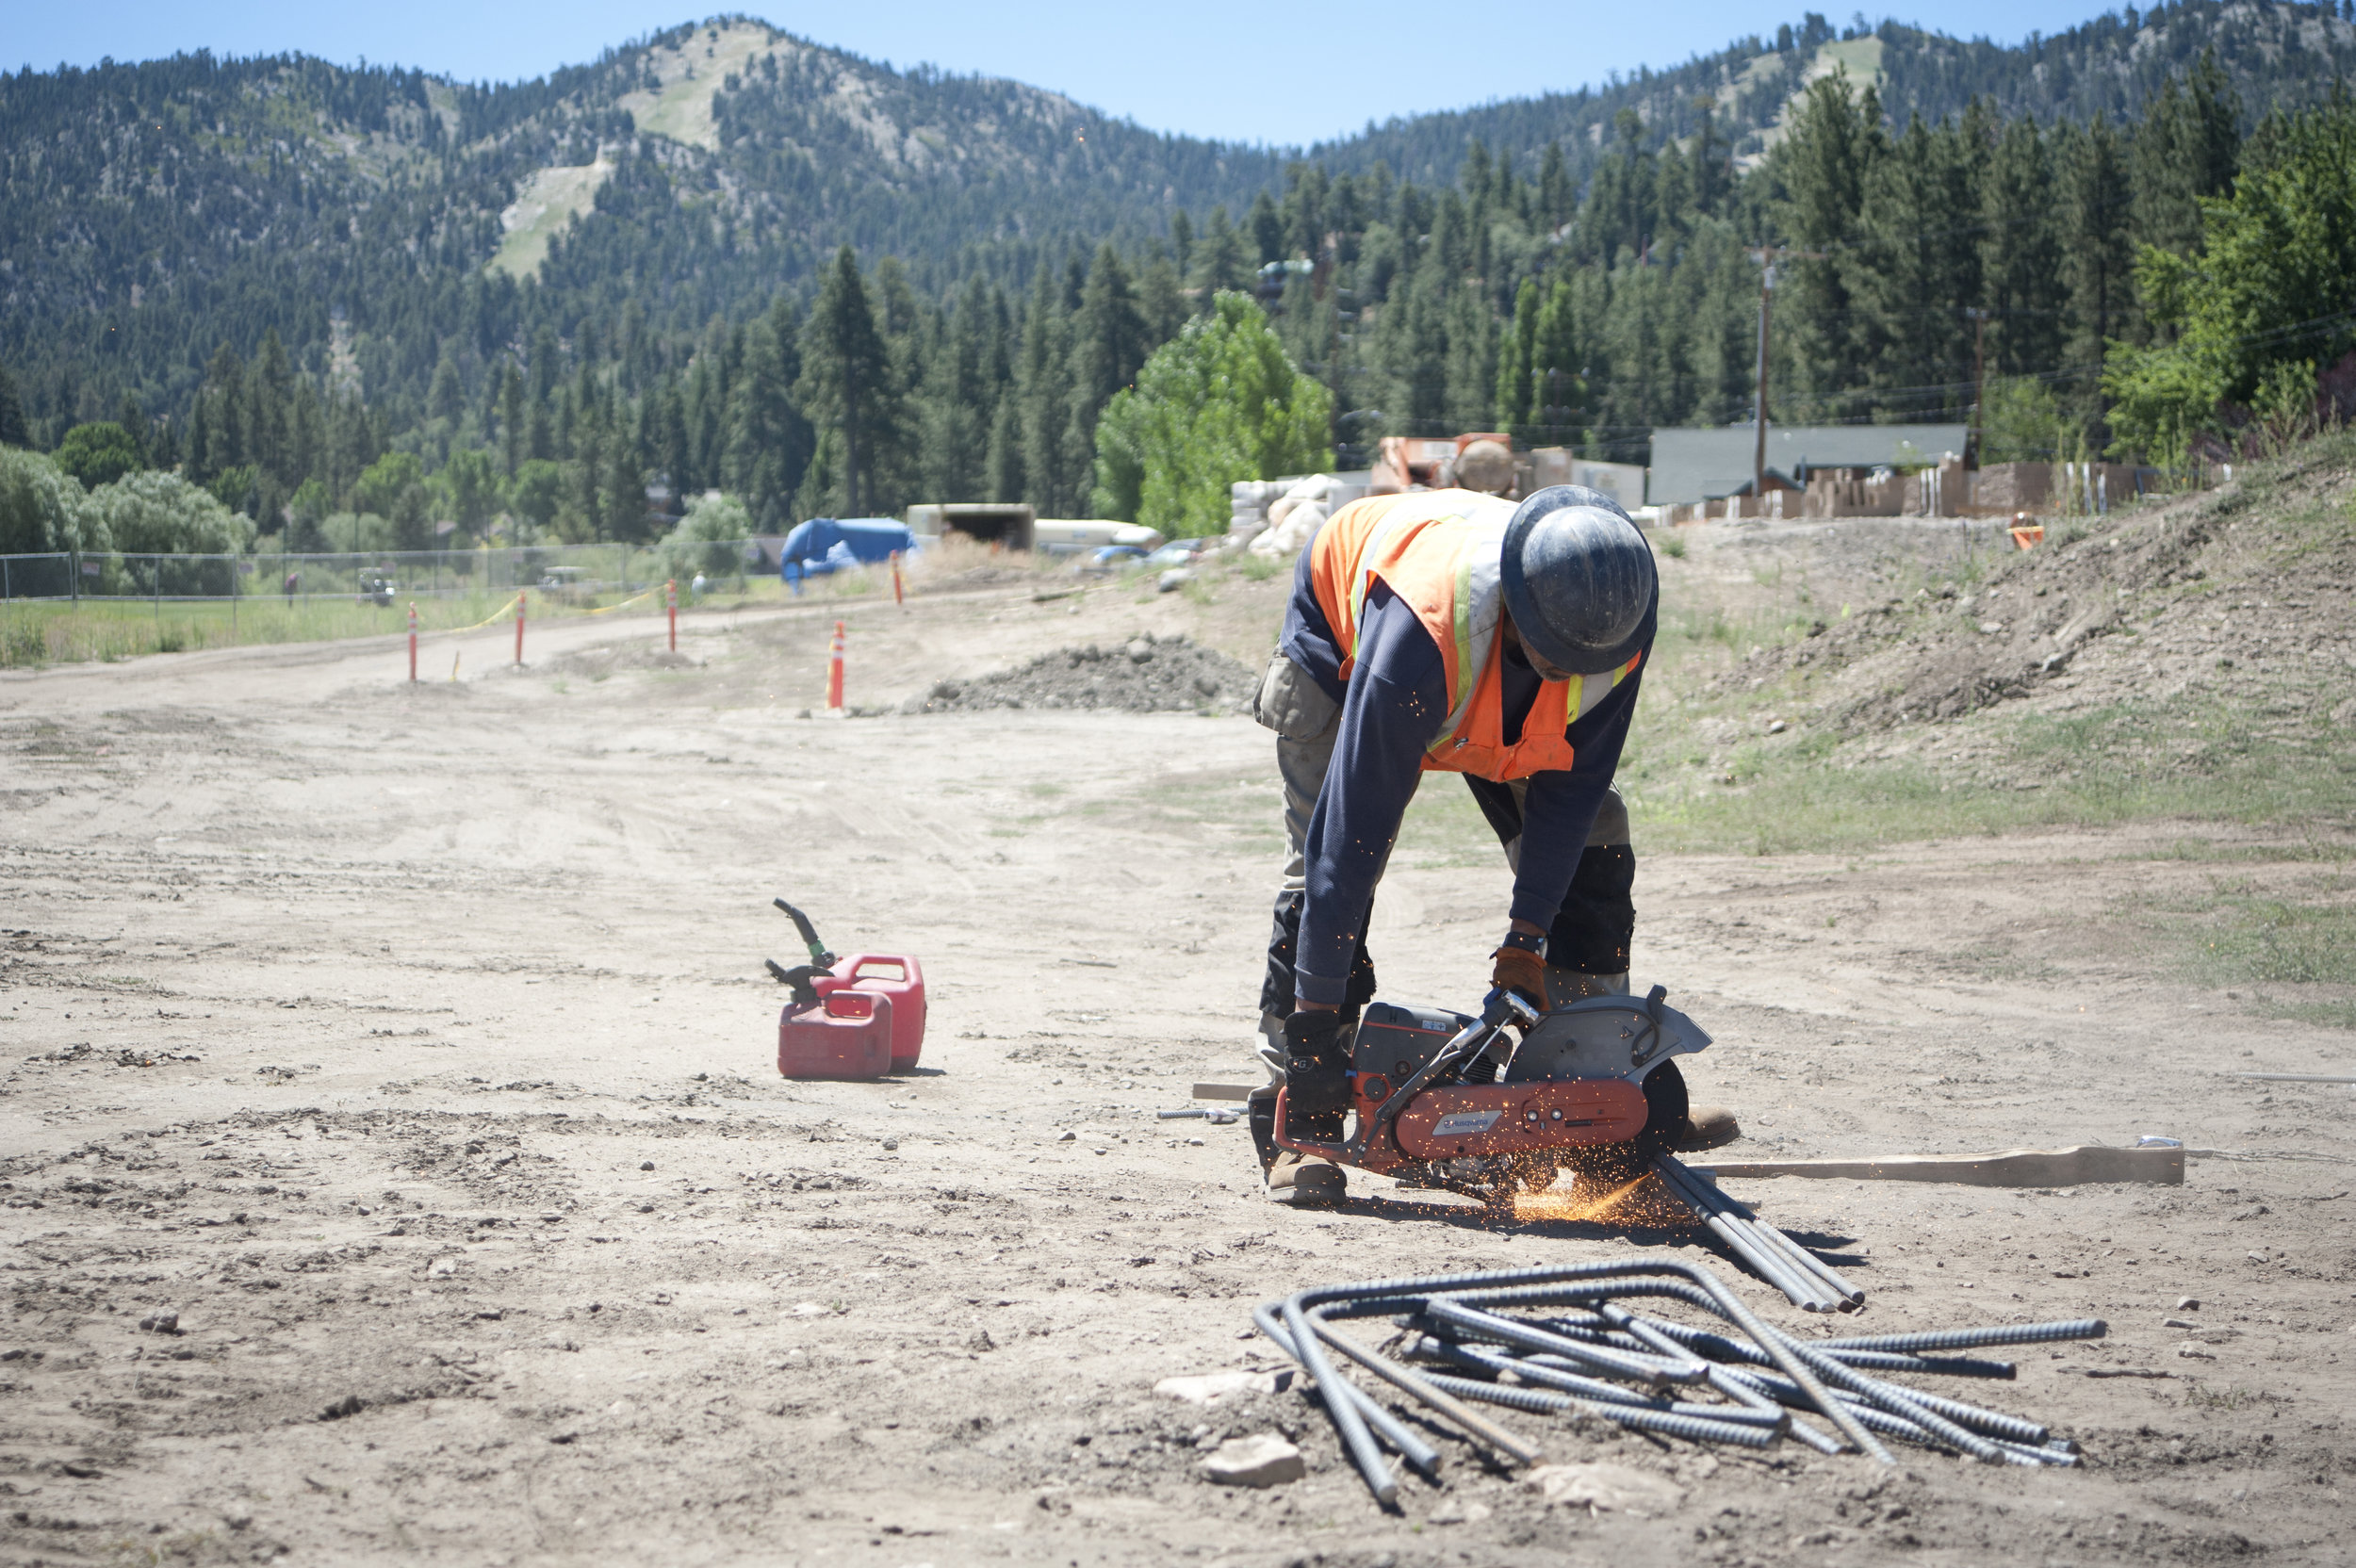 Sparks fly as Carlos Escalante cuts metal rods for the carnivore enclosure at the site of the new Big Bear Alpine Zoo July 21, 2017.